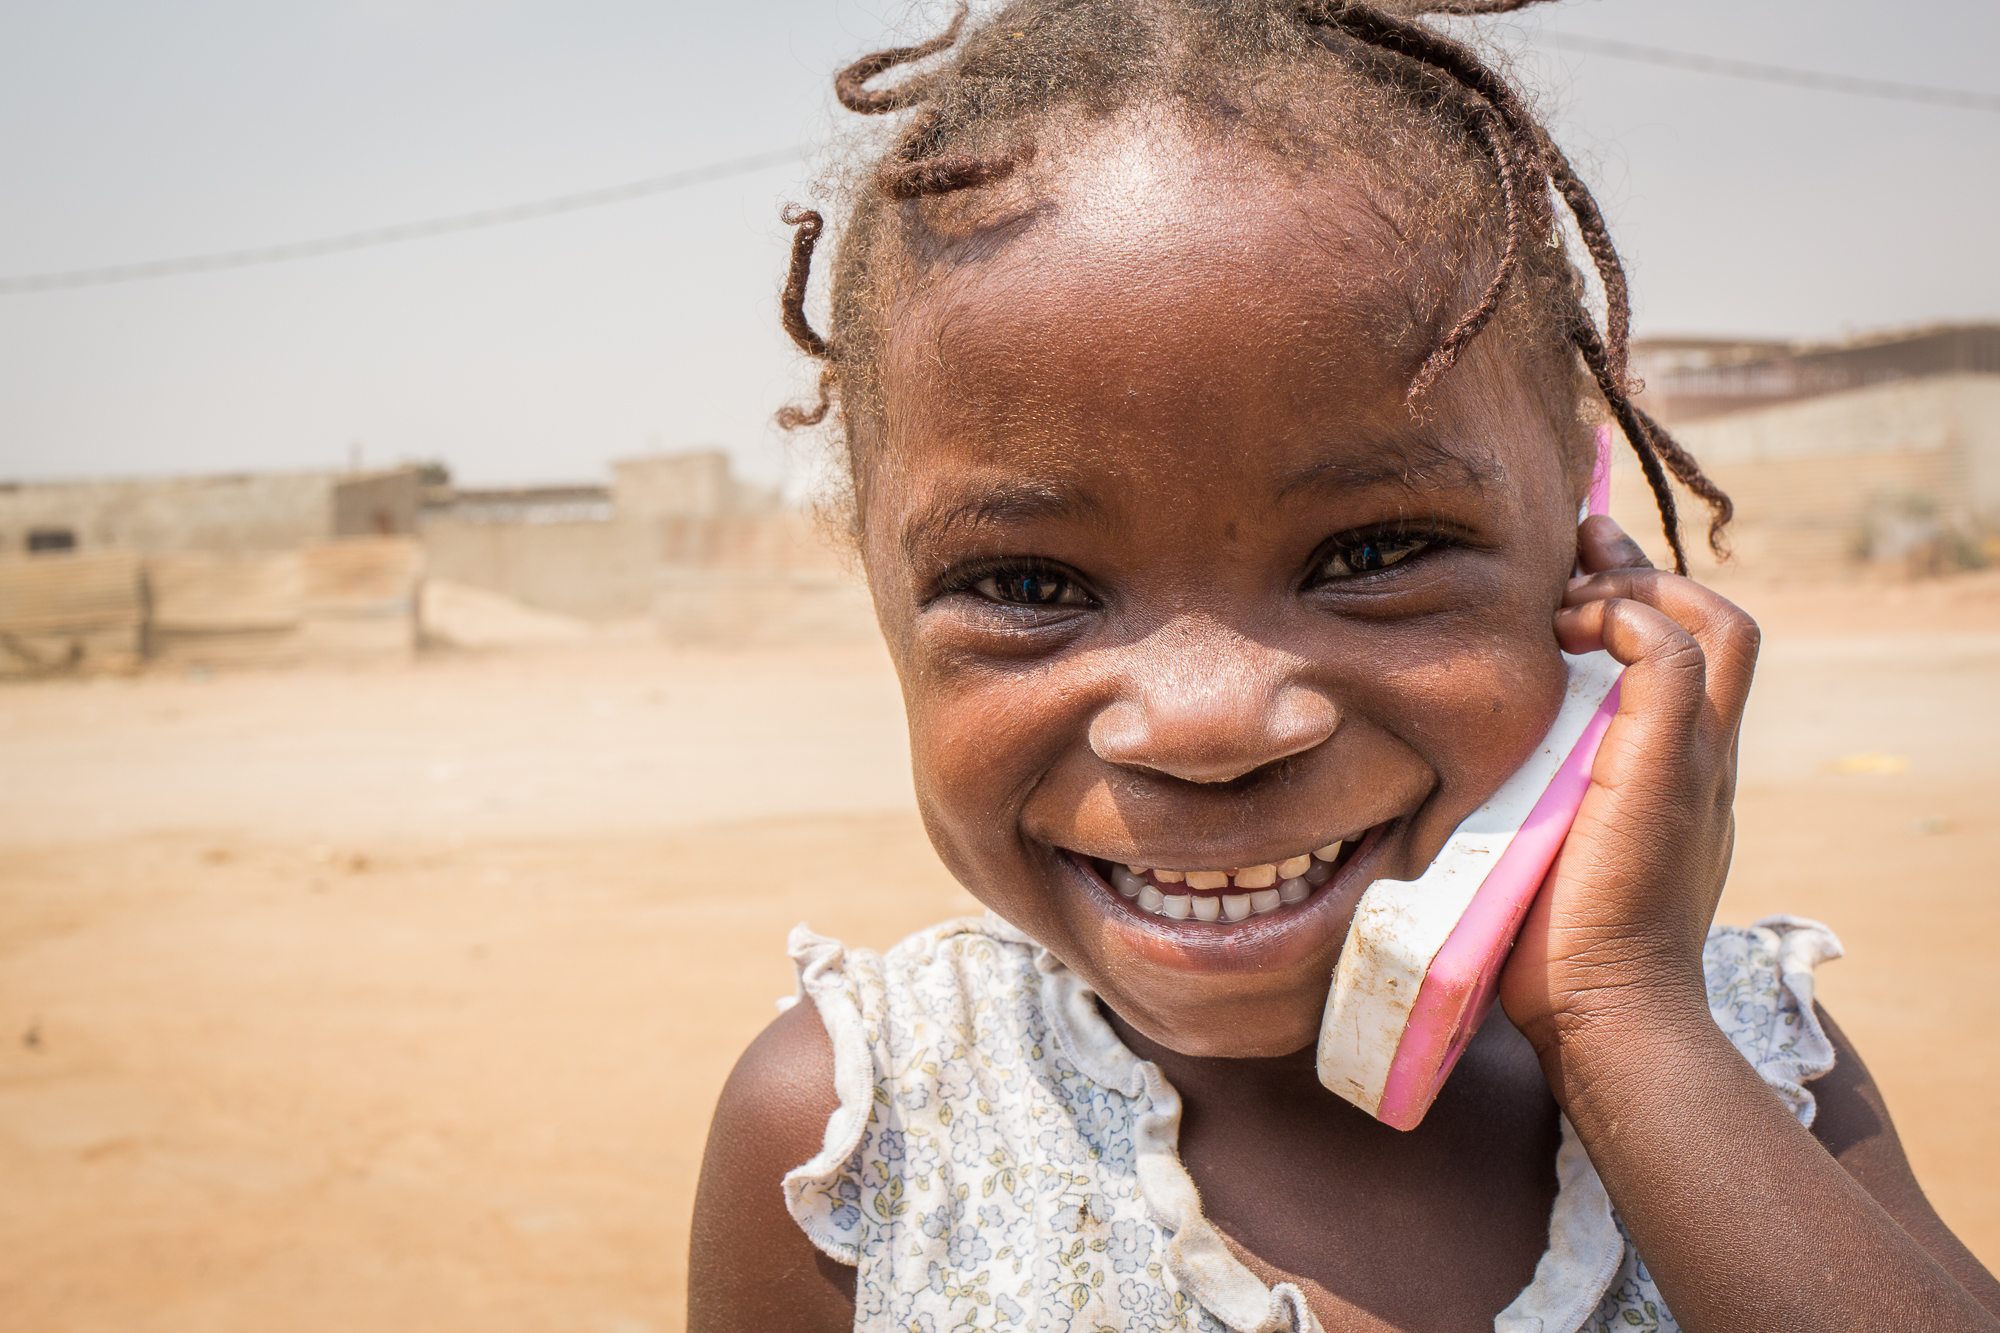 Girls plays with a mobile phone toy, pretending to speak to someone, during a polio immunization campaign in Angola, in 2015